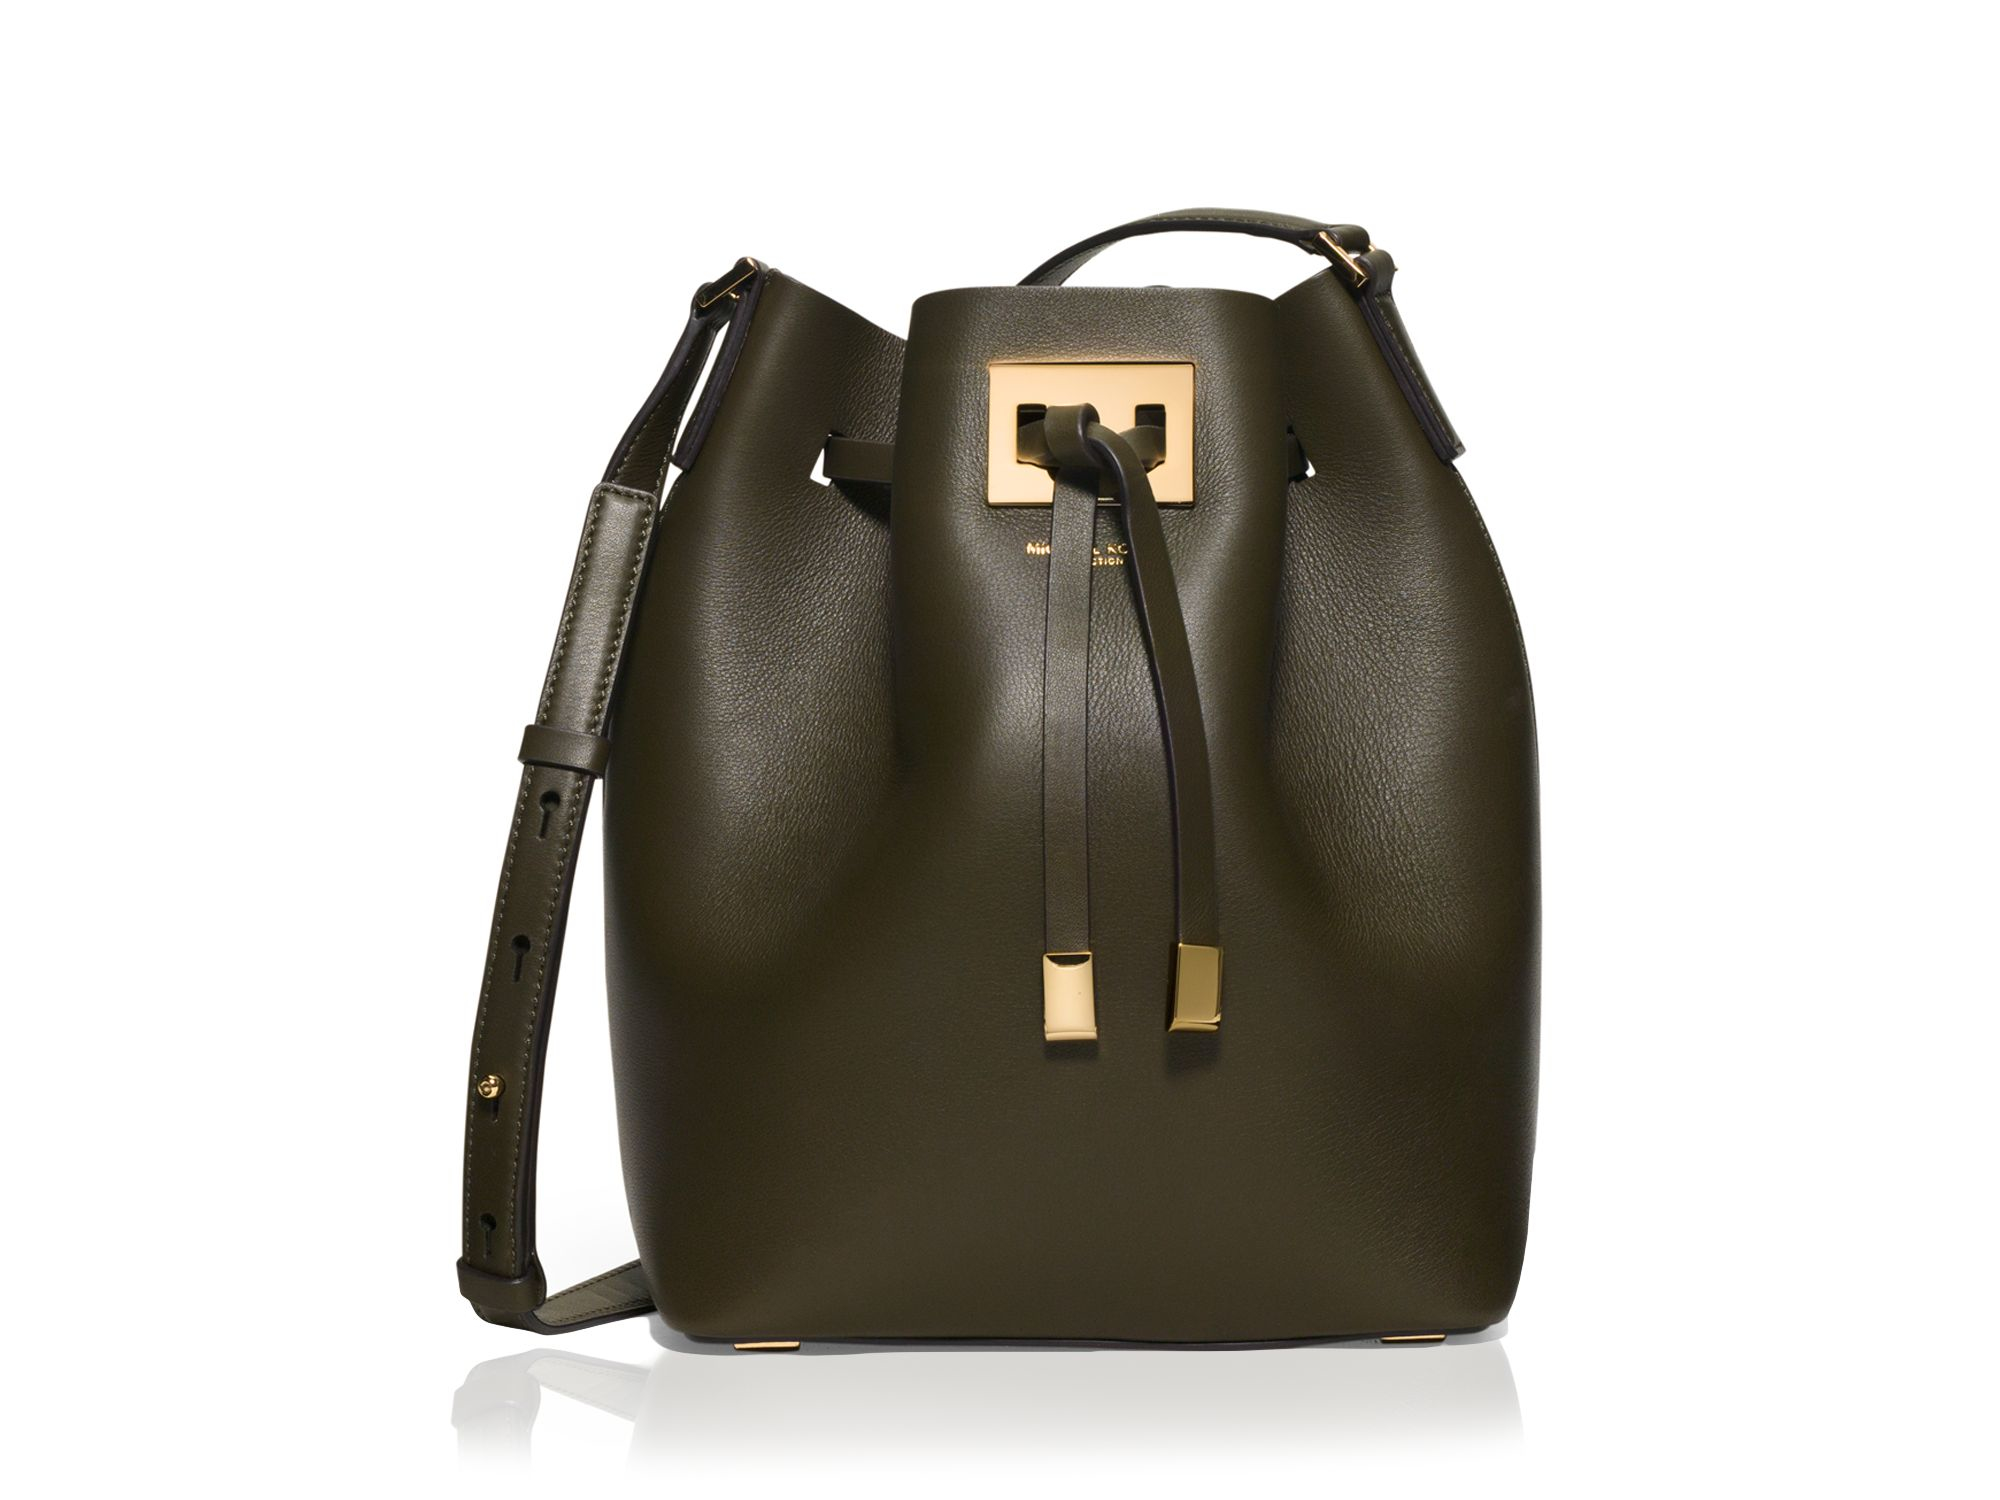 232276f24fa274 Gallery. Previously sold at: Bloomingdale's · Women's Michael By Michael  Kors Miranda